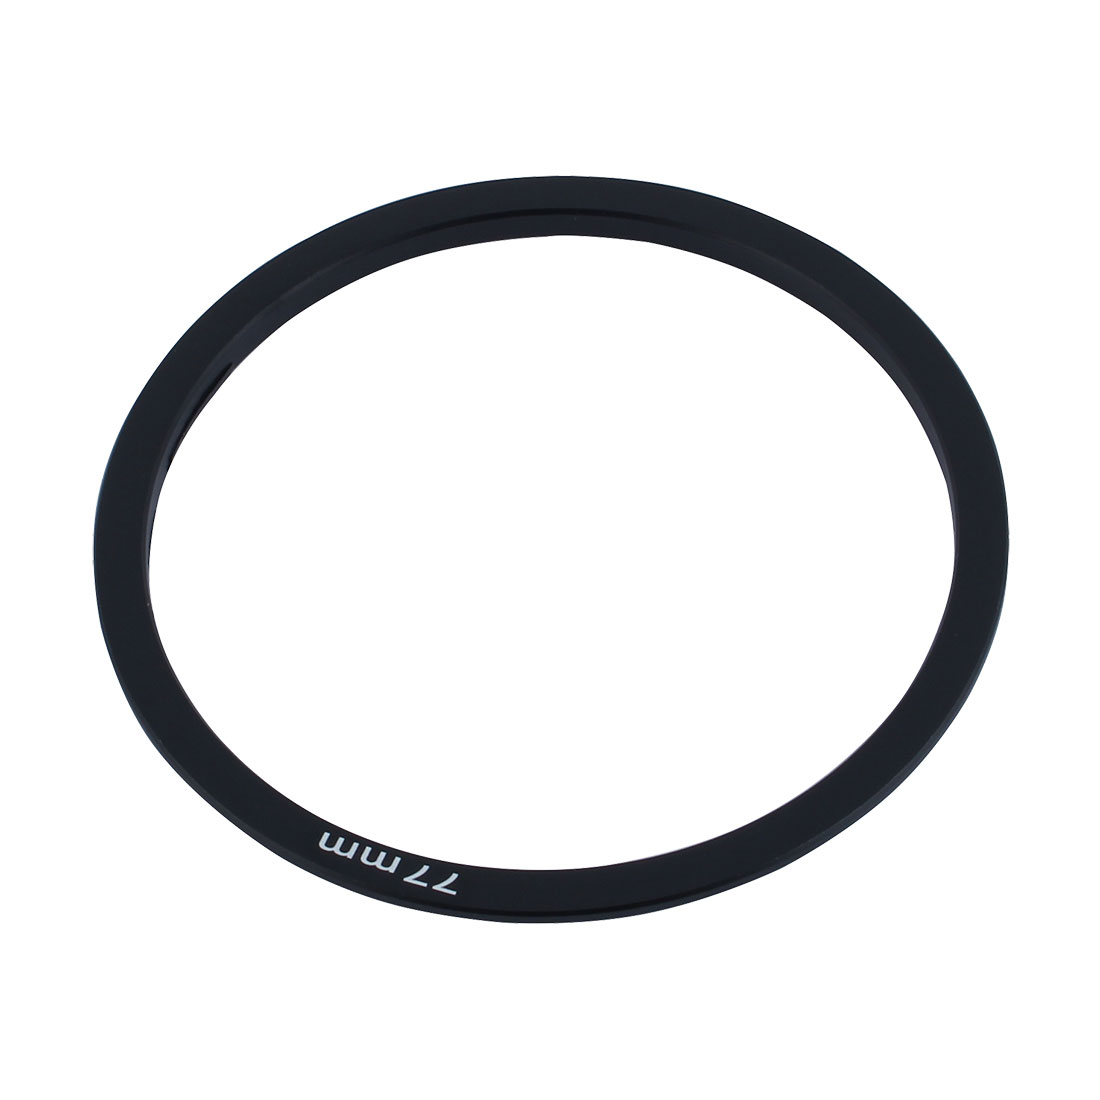 77mm Lens Black Metal Adapter Ring for Cokin P Series Filter Holder